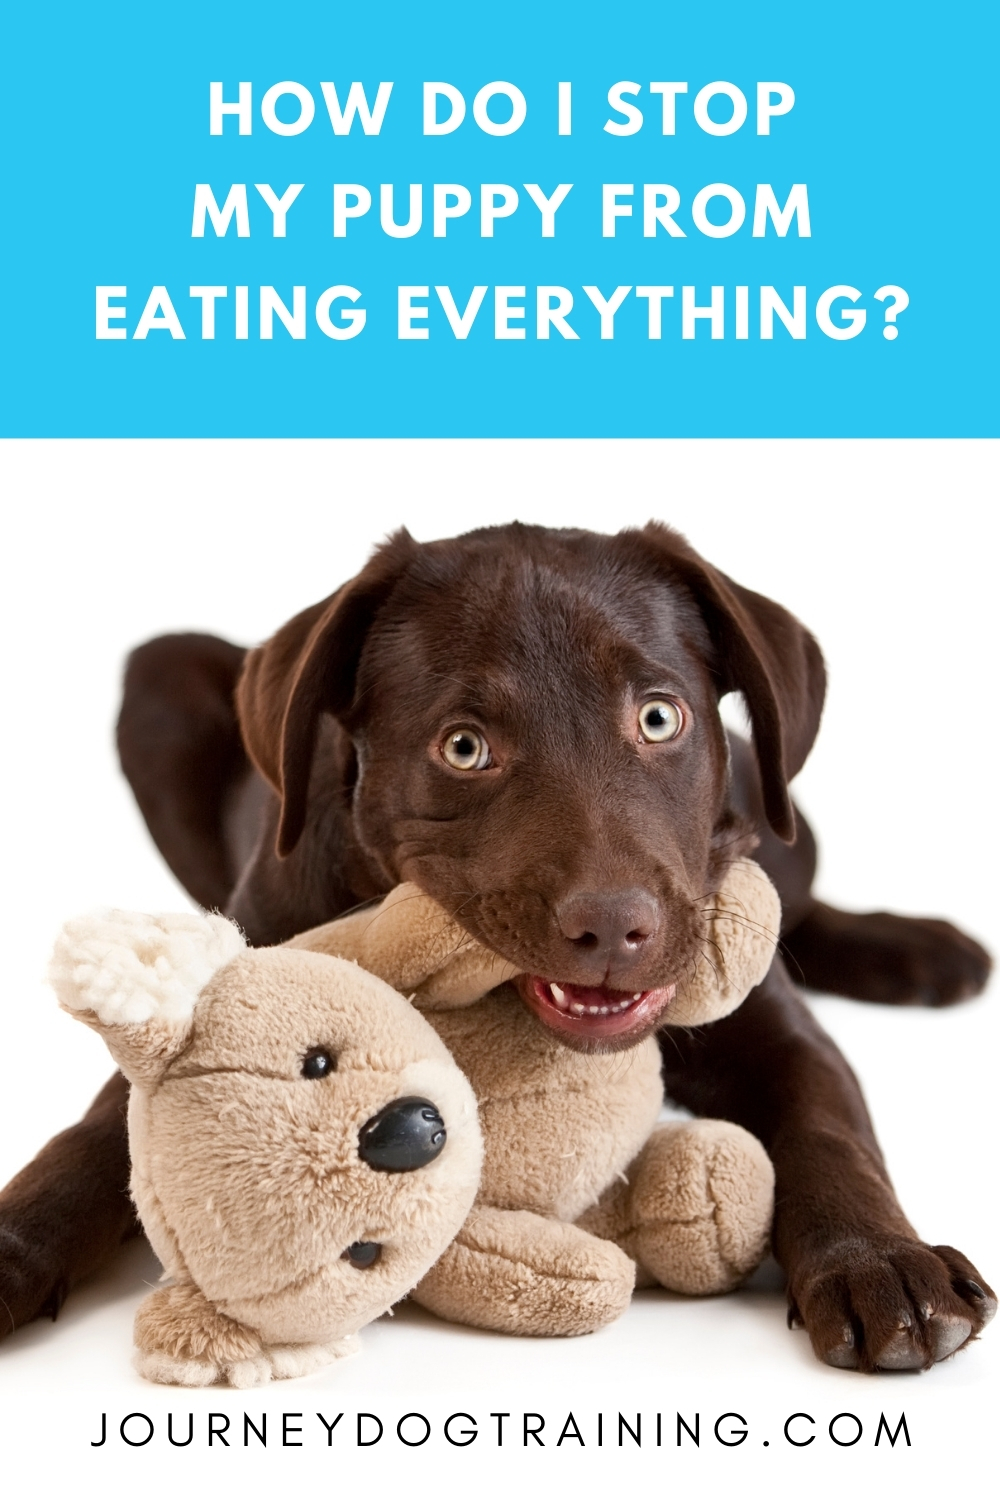 How do I stop my puppy from eating everything? | journeydogtraining.com